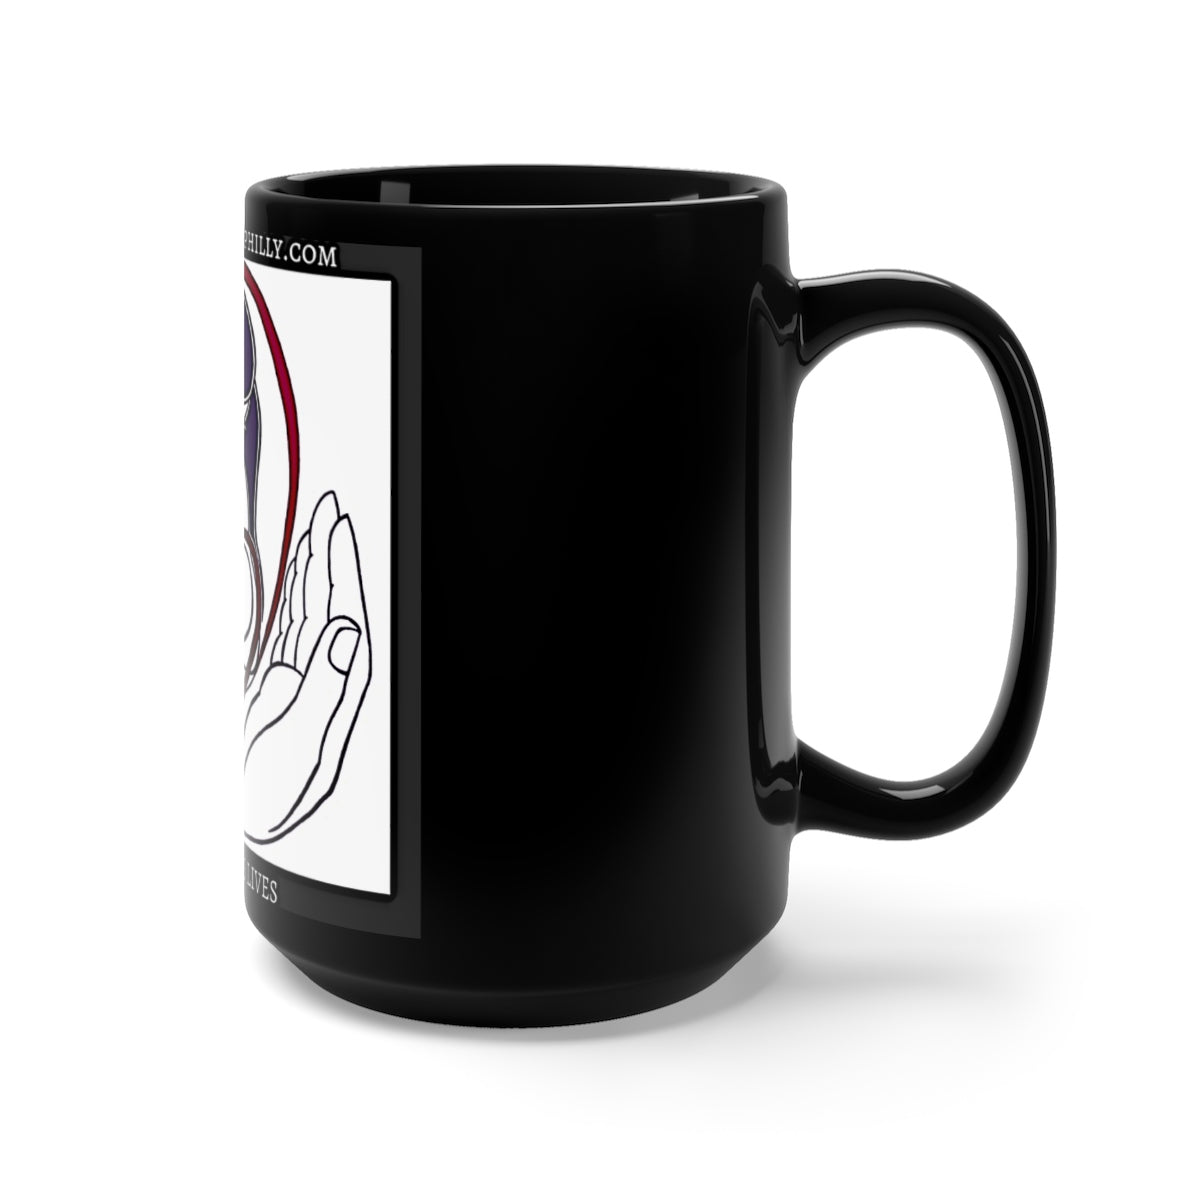 Sidewalk Servants Black Mug 15oz